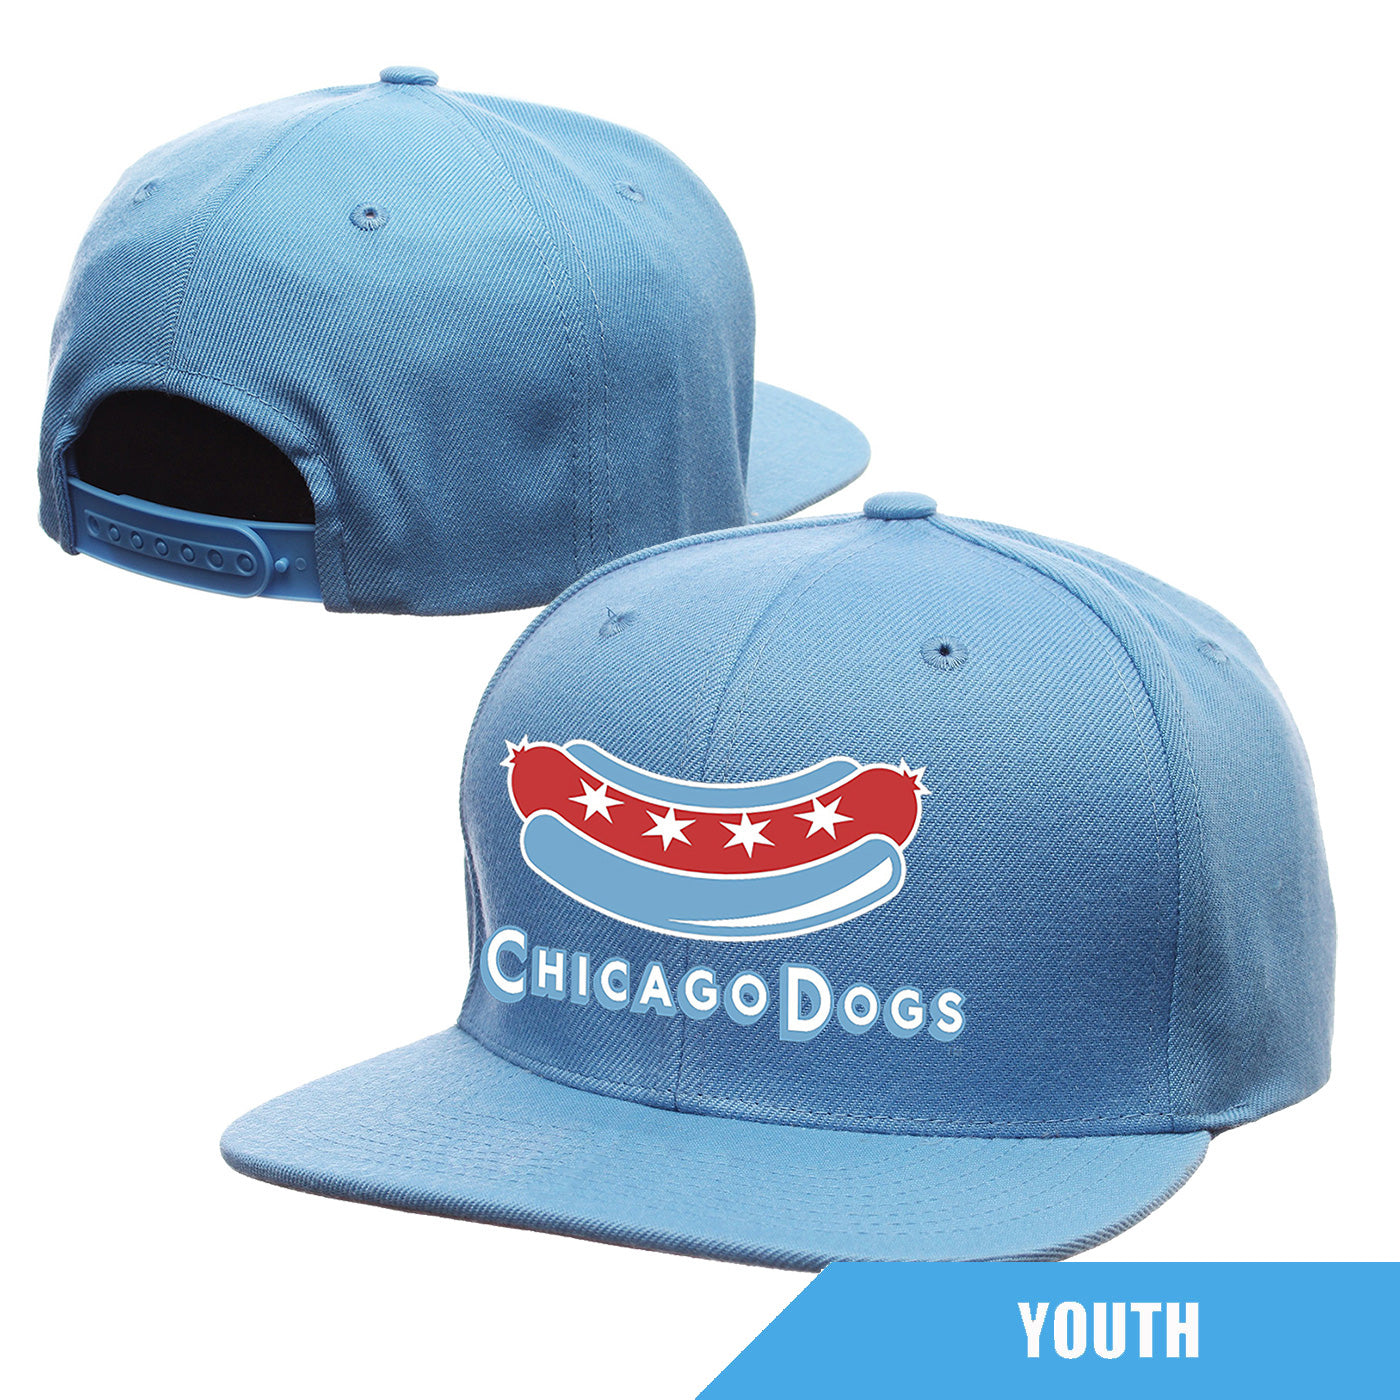 Chicago Dogs Outerstuff Youth Secondary Logo Flatbrim Snapback Hat - Light Blue